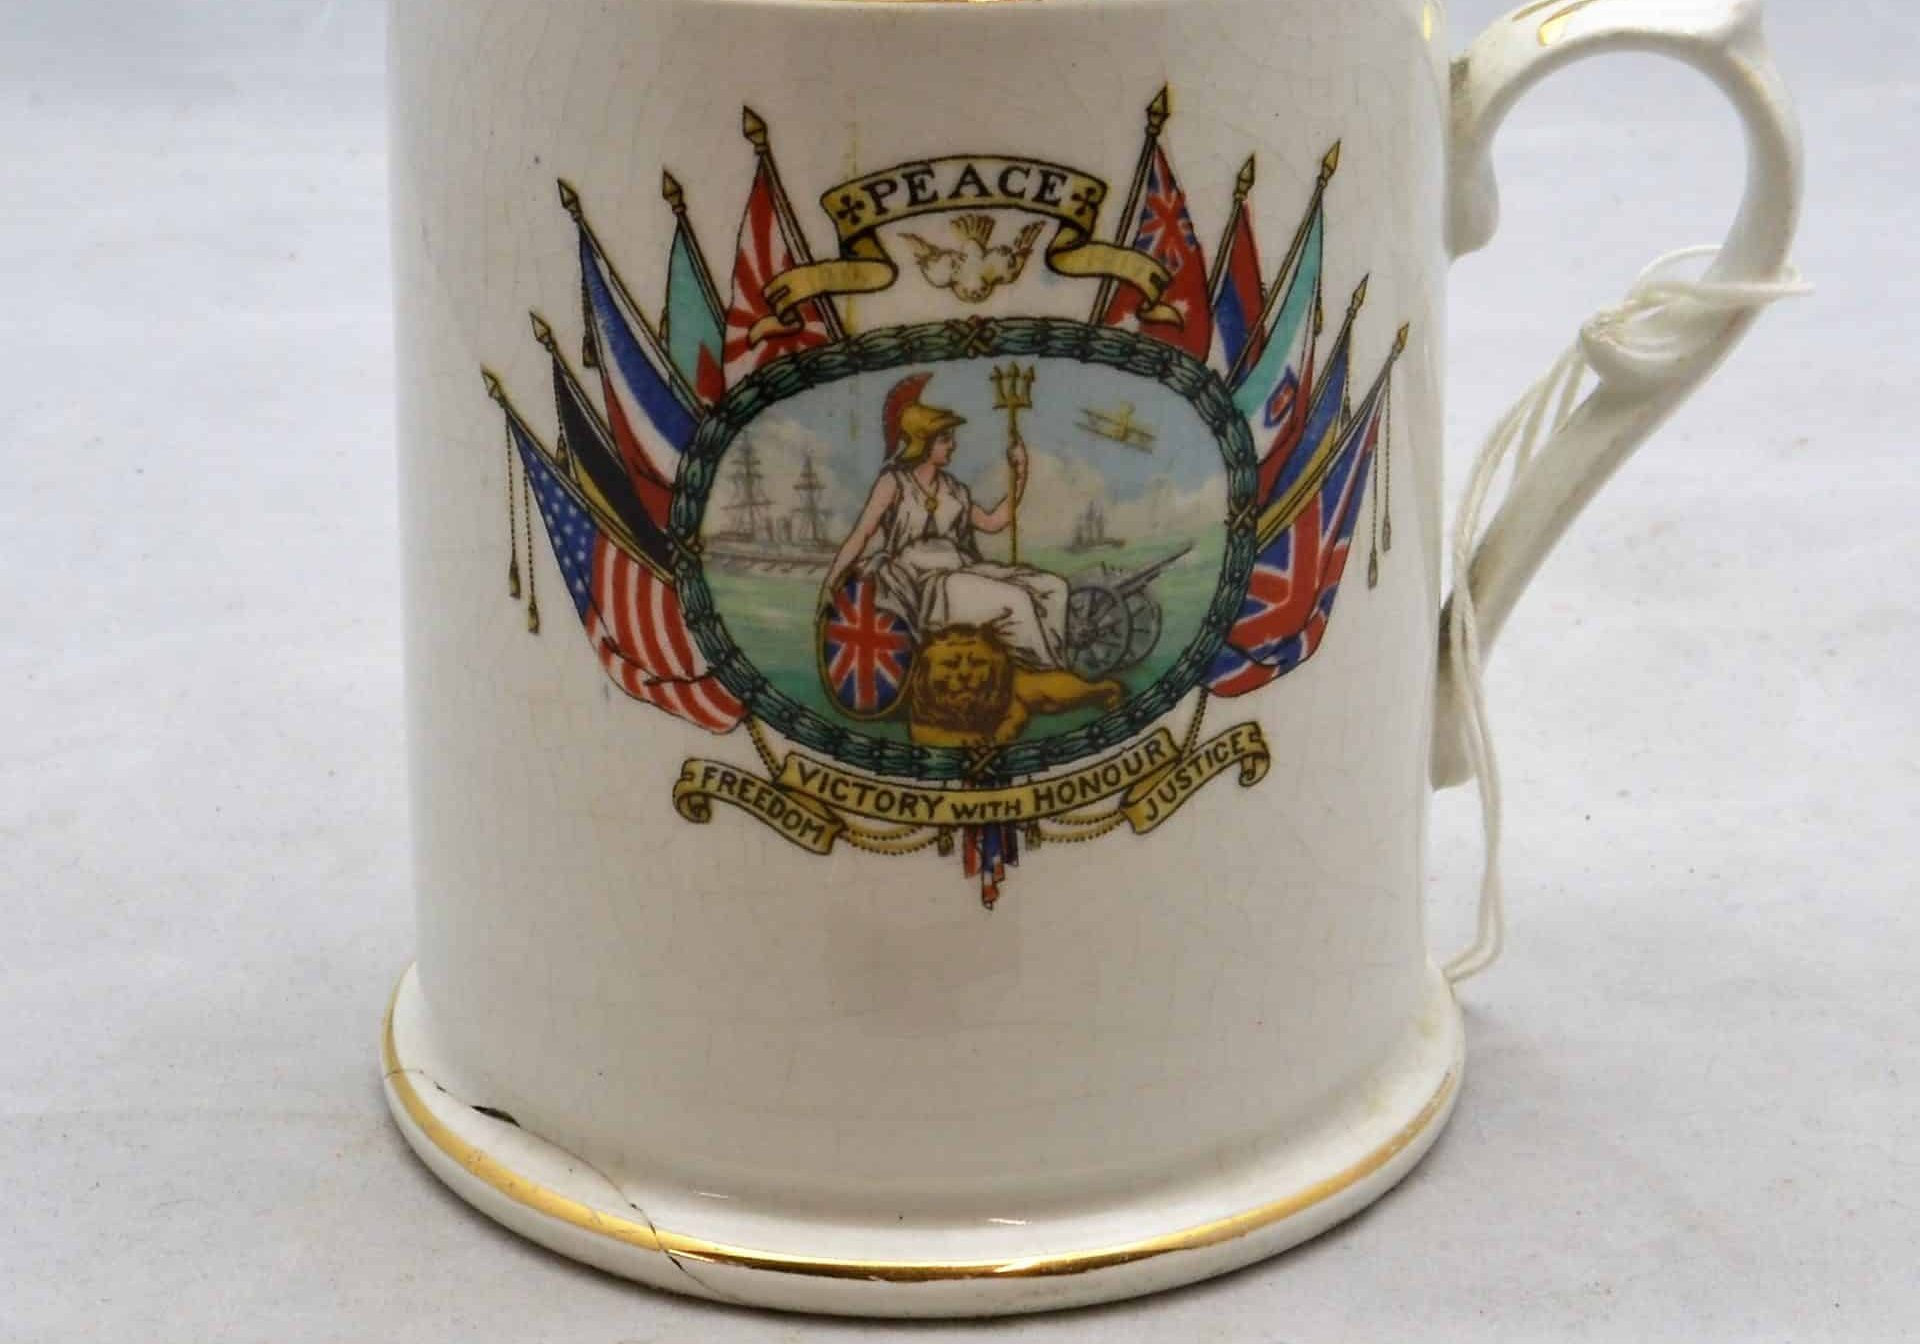 WW1 12 F7682 Mug - depicting Brititania + Lion Peace Victory with Honour, Freedom, Justice